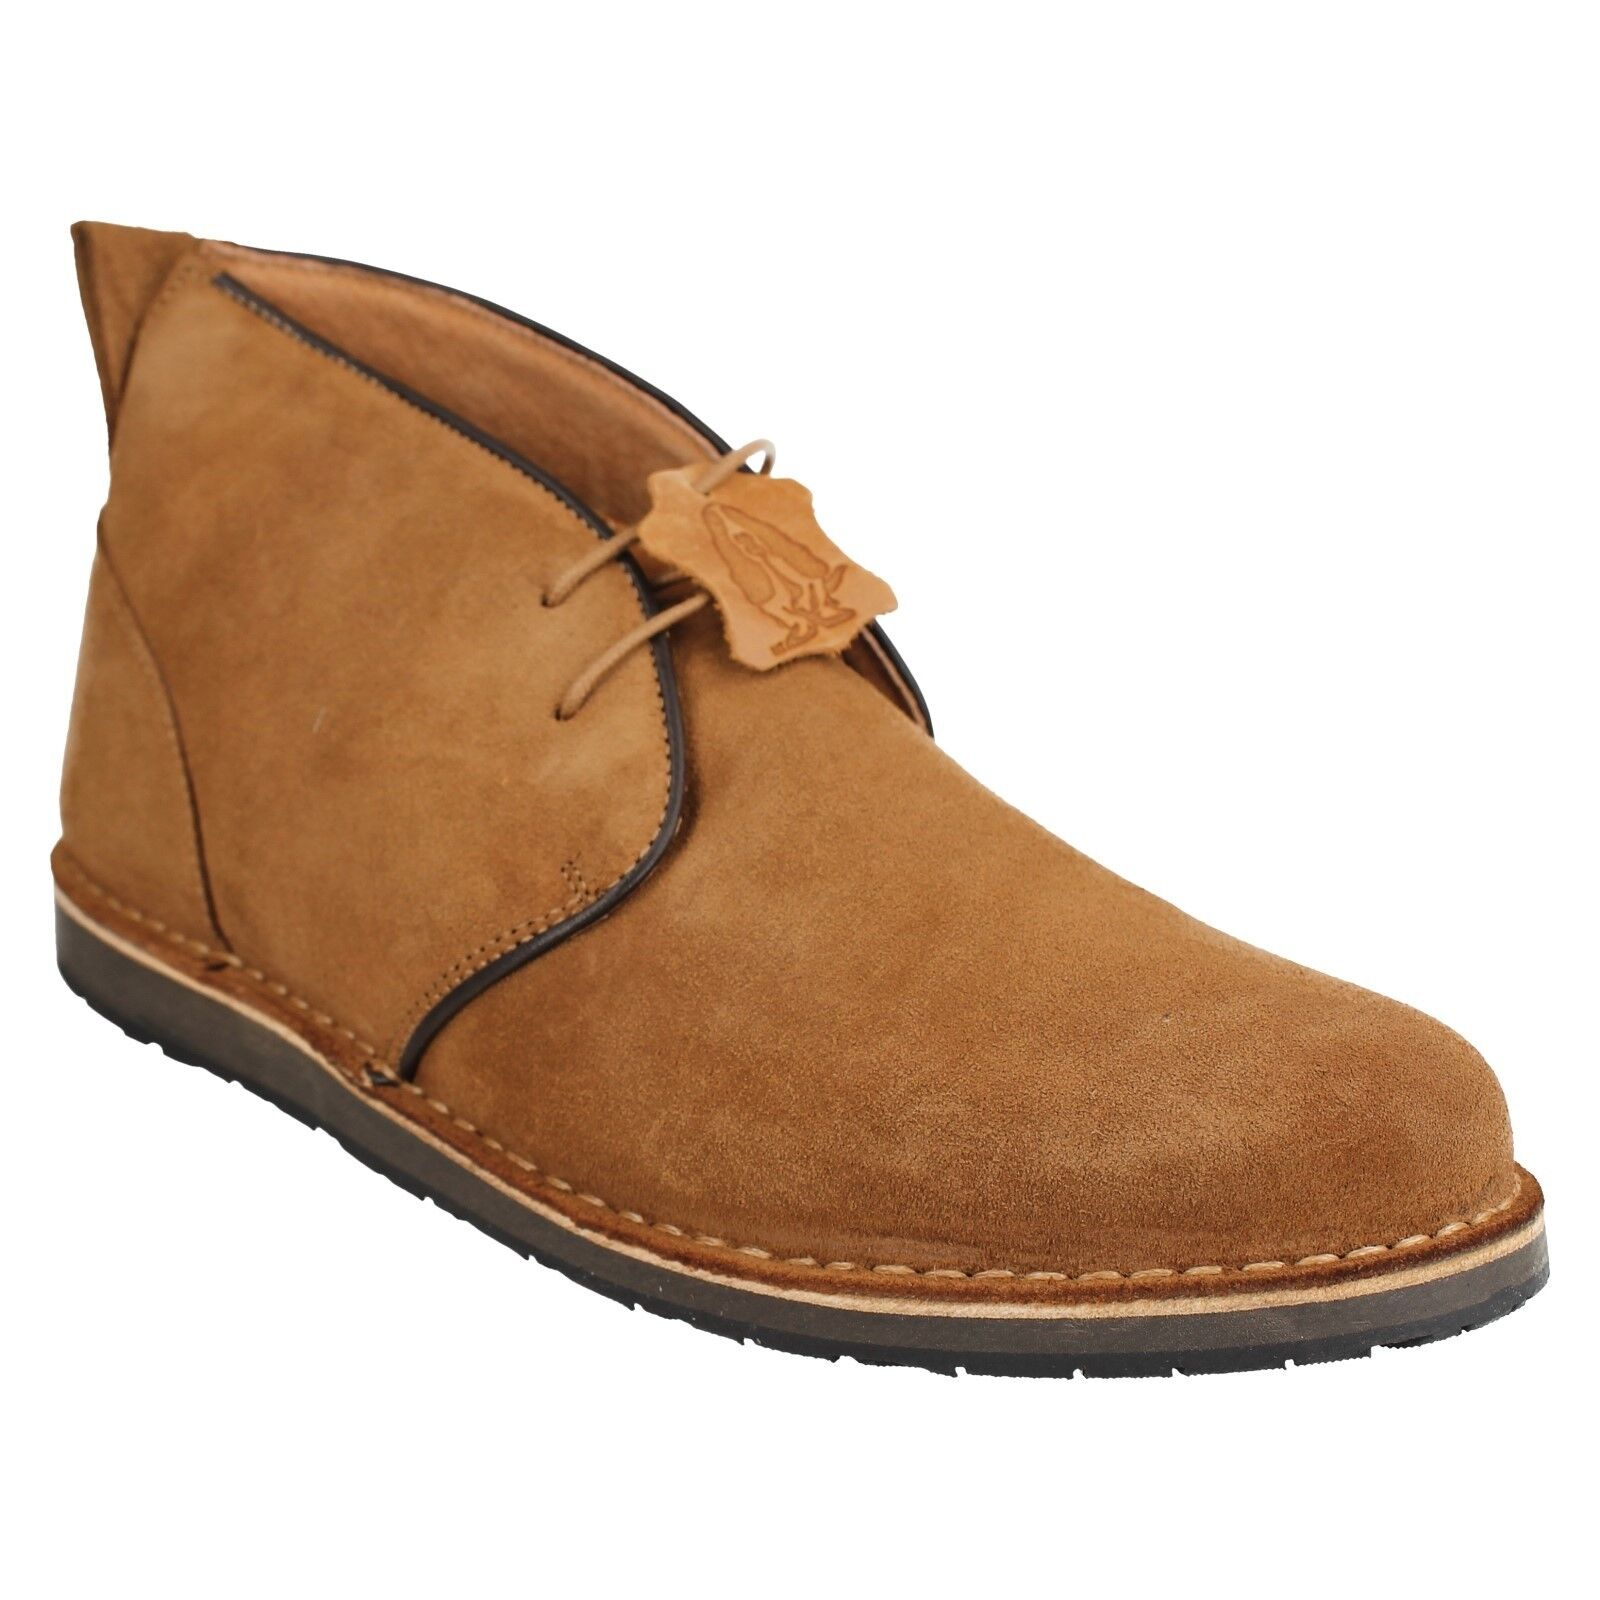 Da Uomo STRINGATI HUSH PUPPIES BARRICANE HERITAGE Plain TAN BROWN STRINGATI Uomo CON Smart Stivaletti a8d434